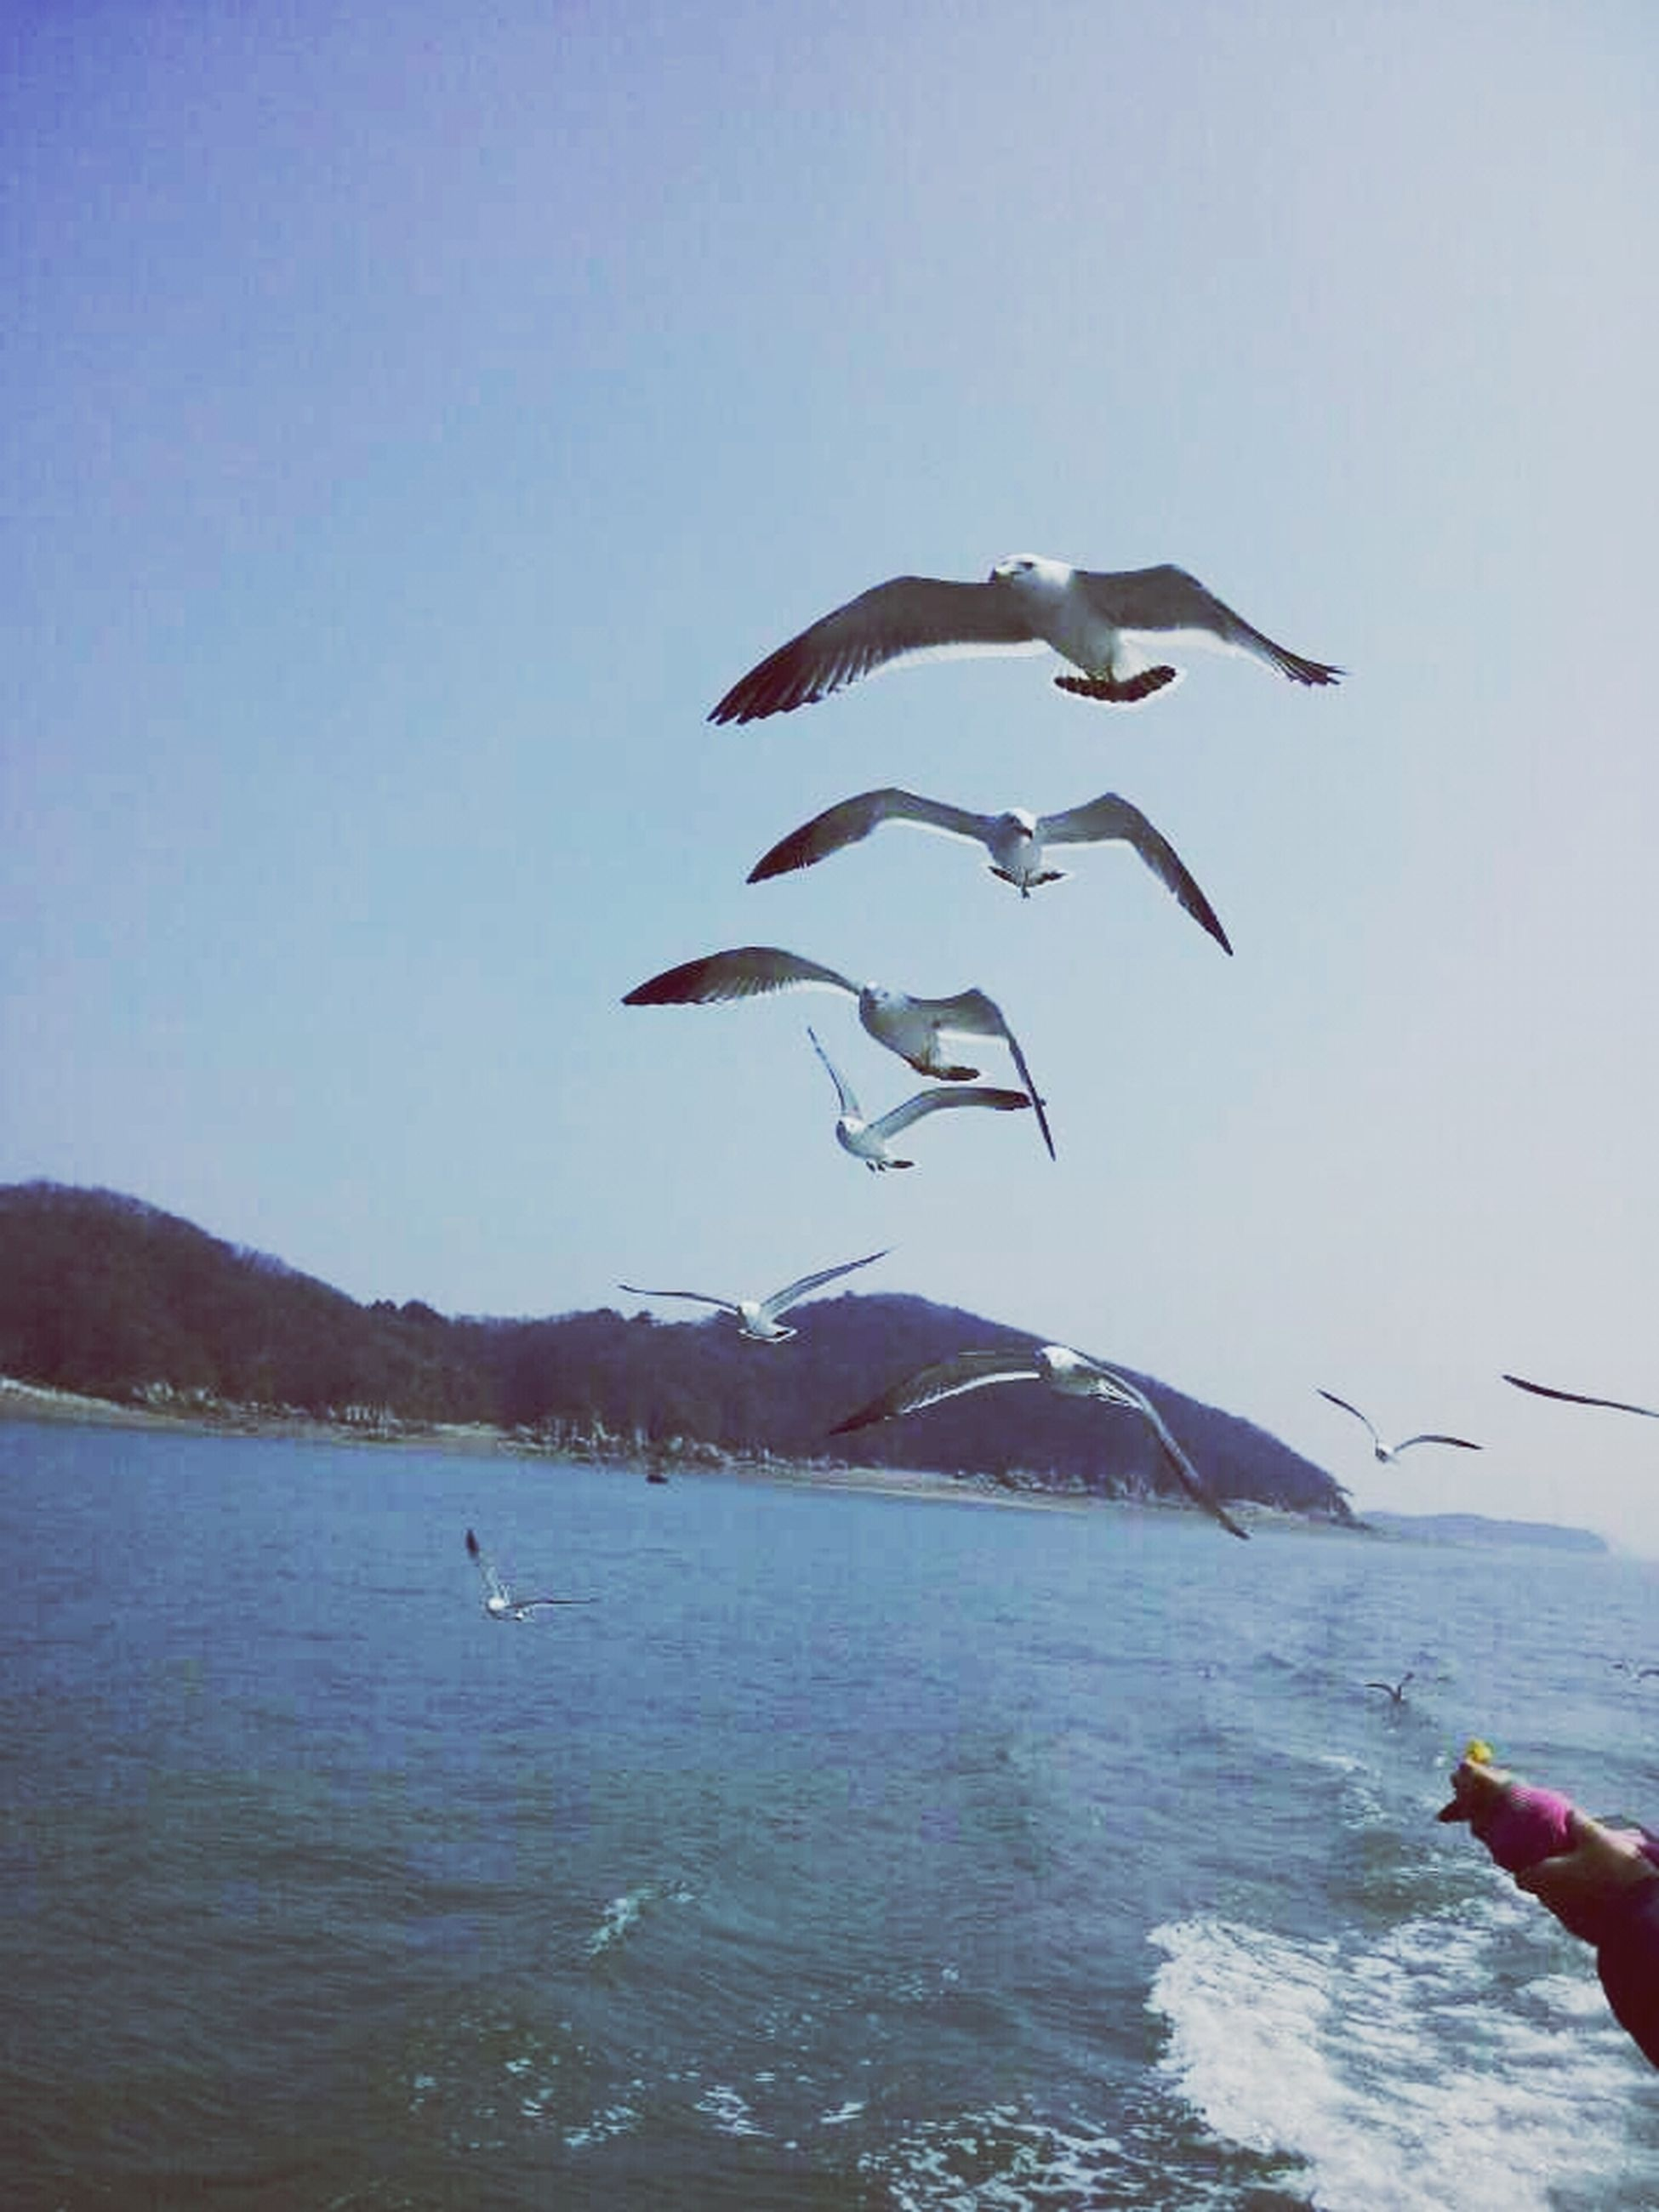 flying, bird, water, animal themes, animals in the wild, sea, wildlife, mountain, clear sky, mid-air, spread wings, scenics, seagull, nature, tranquil scene, beauty in nature, waterfront, tranquility, blue, sky